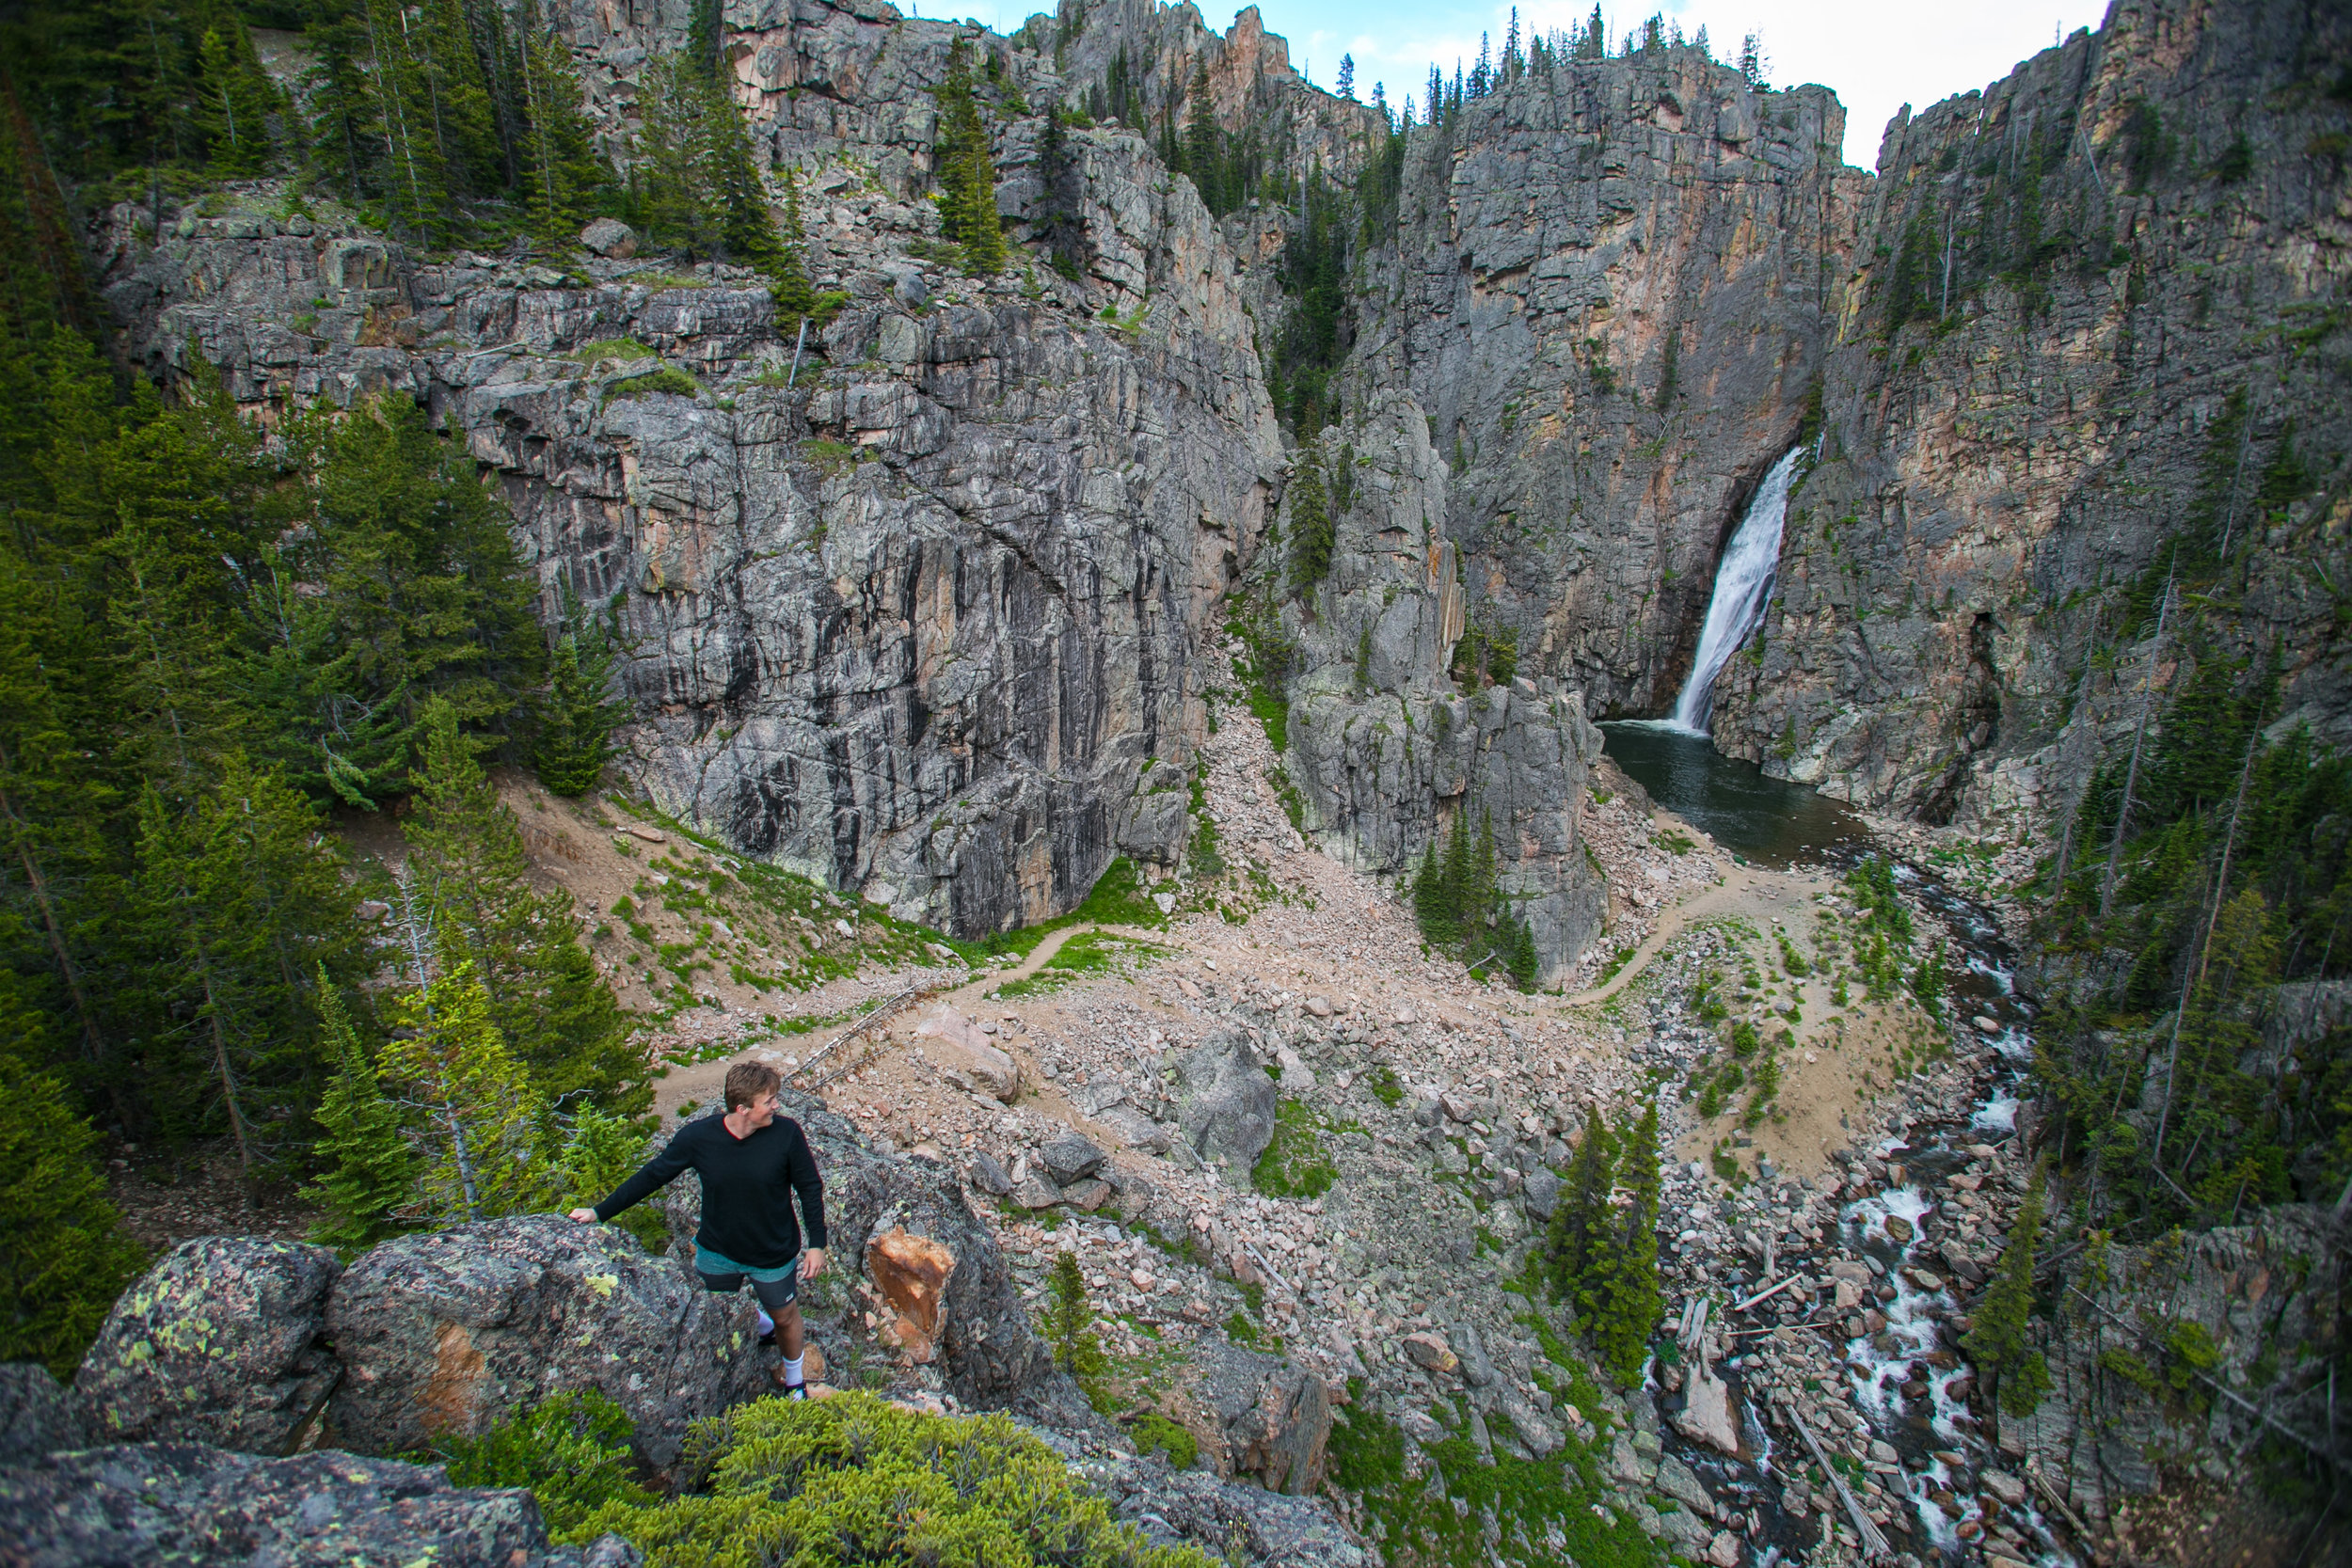 Porcupine Falls, Big Horn National Forest, WY